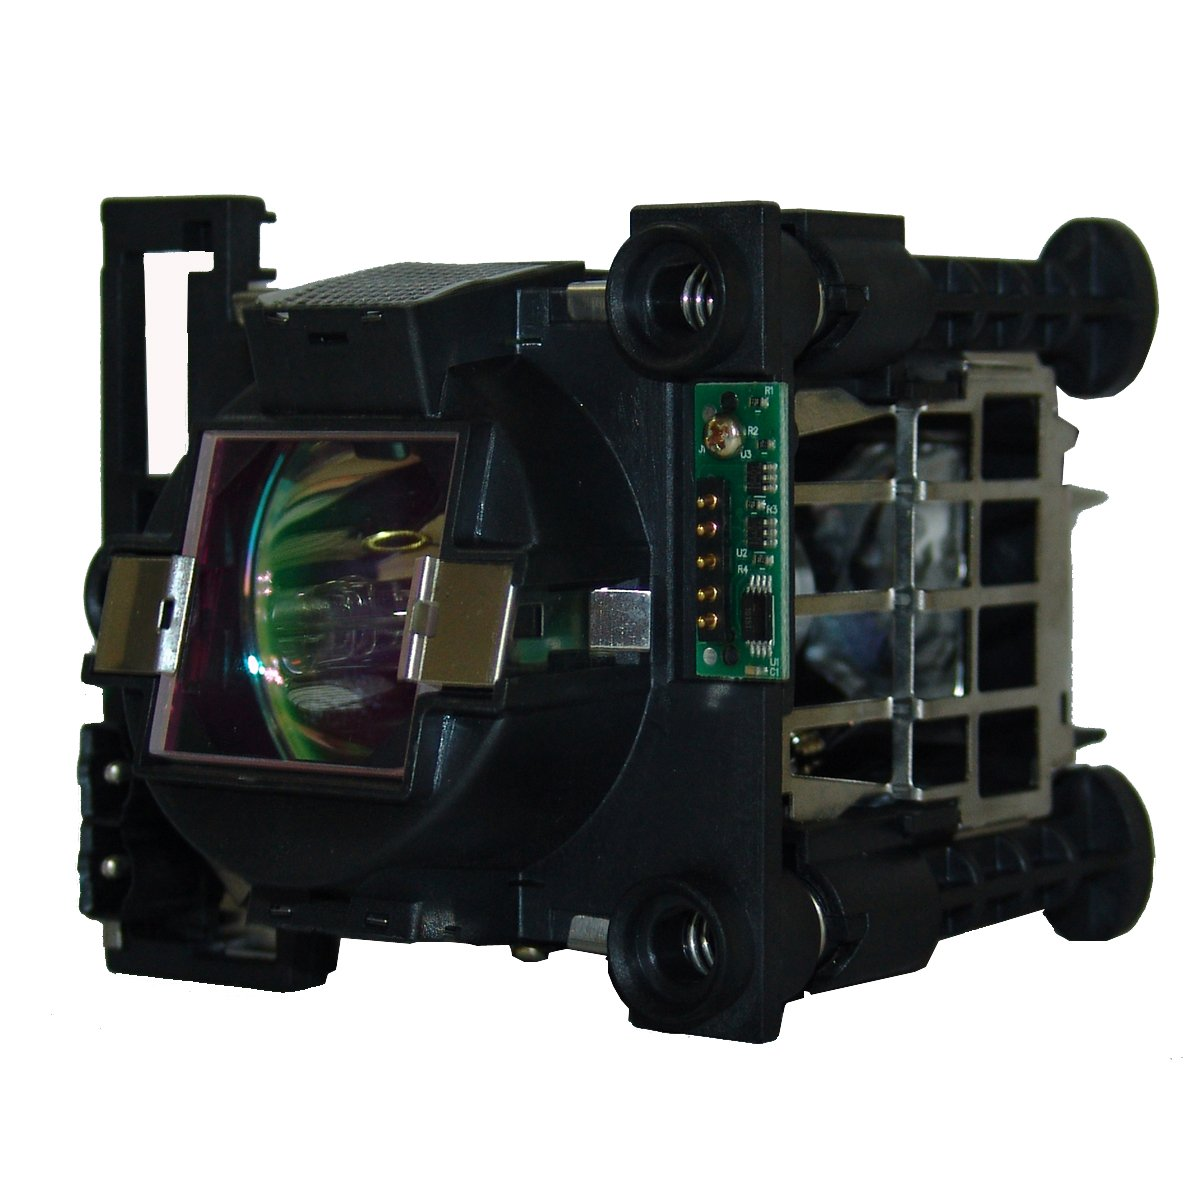 Lutema 400-0500-00-L02 ProjectionDesign 400-0500-00 LCD/DLP Projector Lamp, Premium